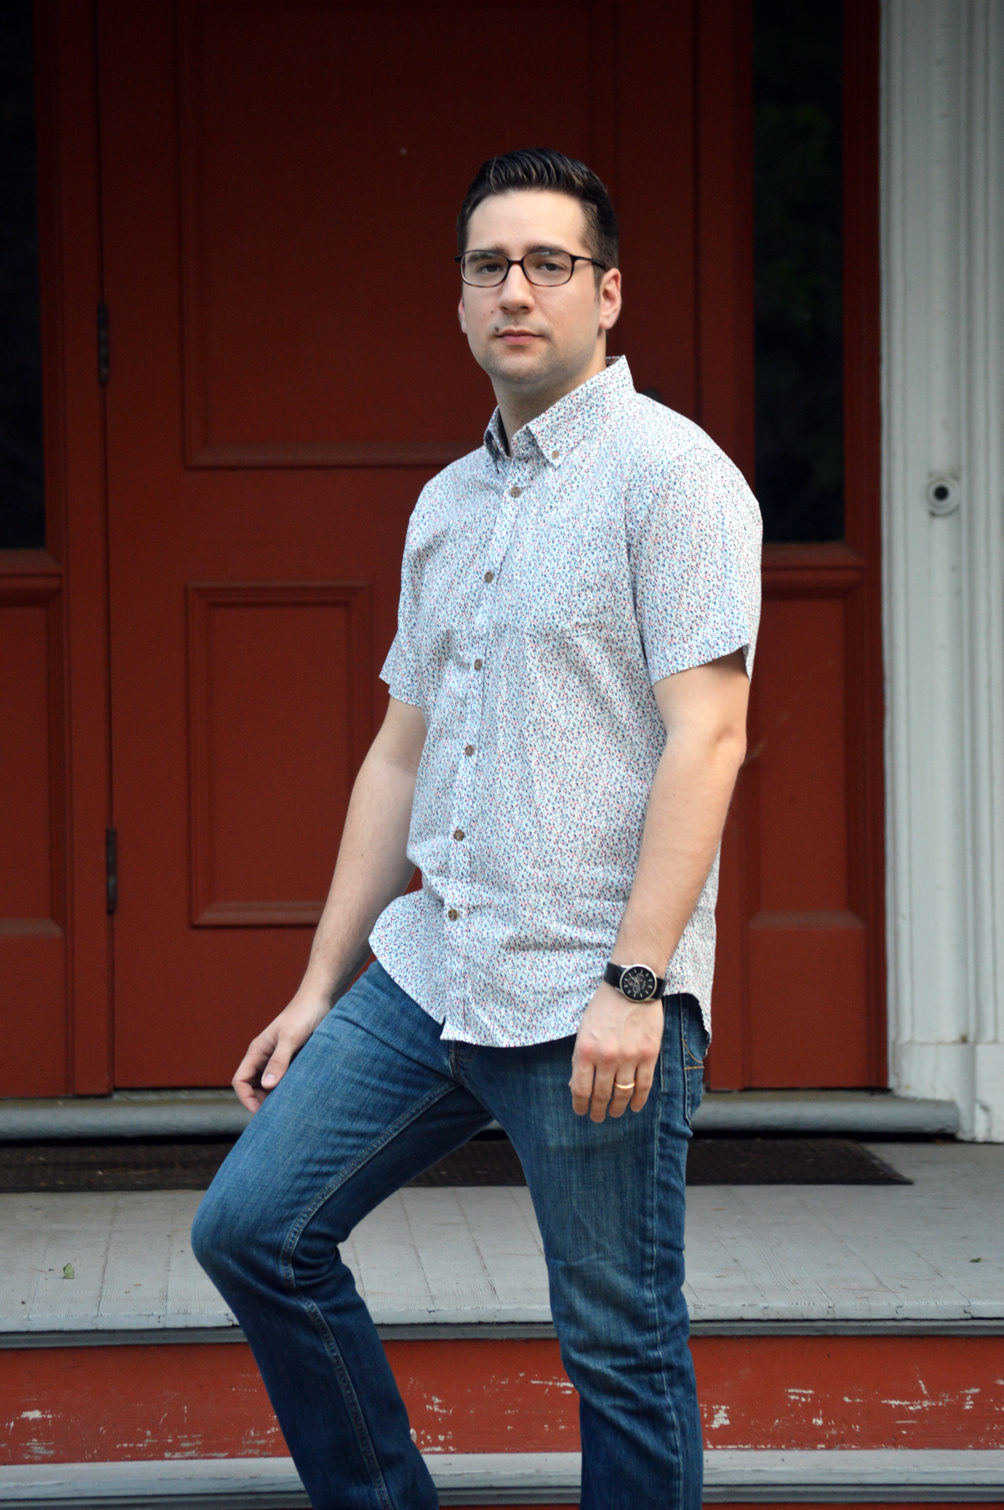 men's Fourth of July outfit inspiration